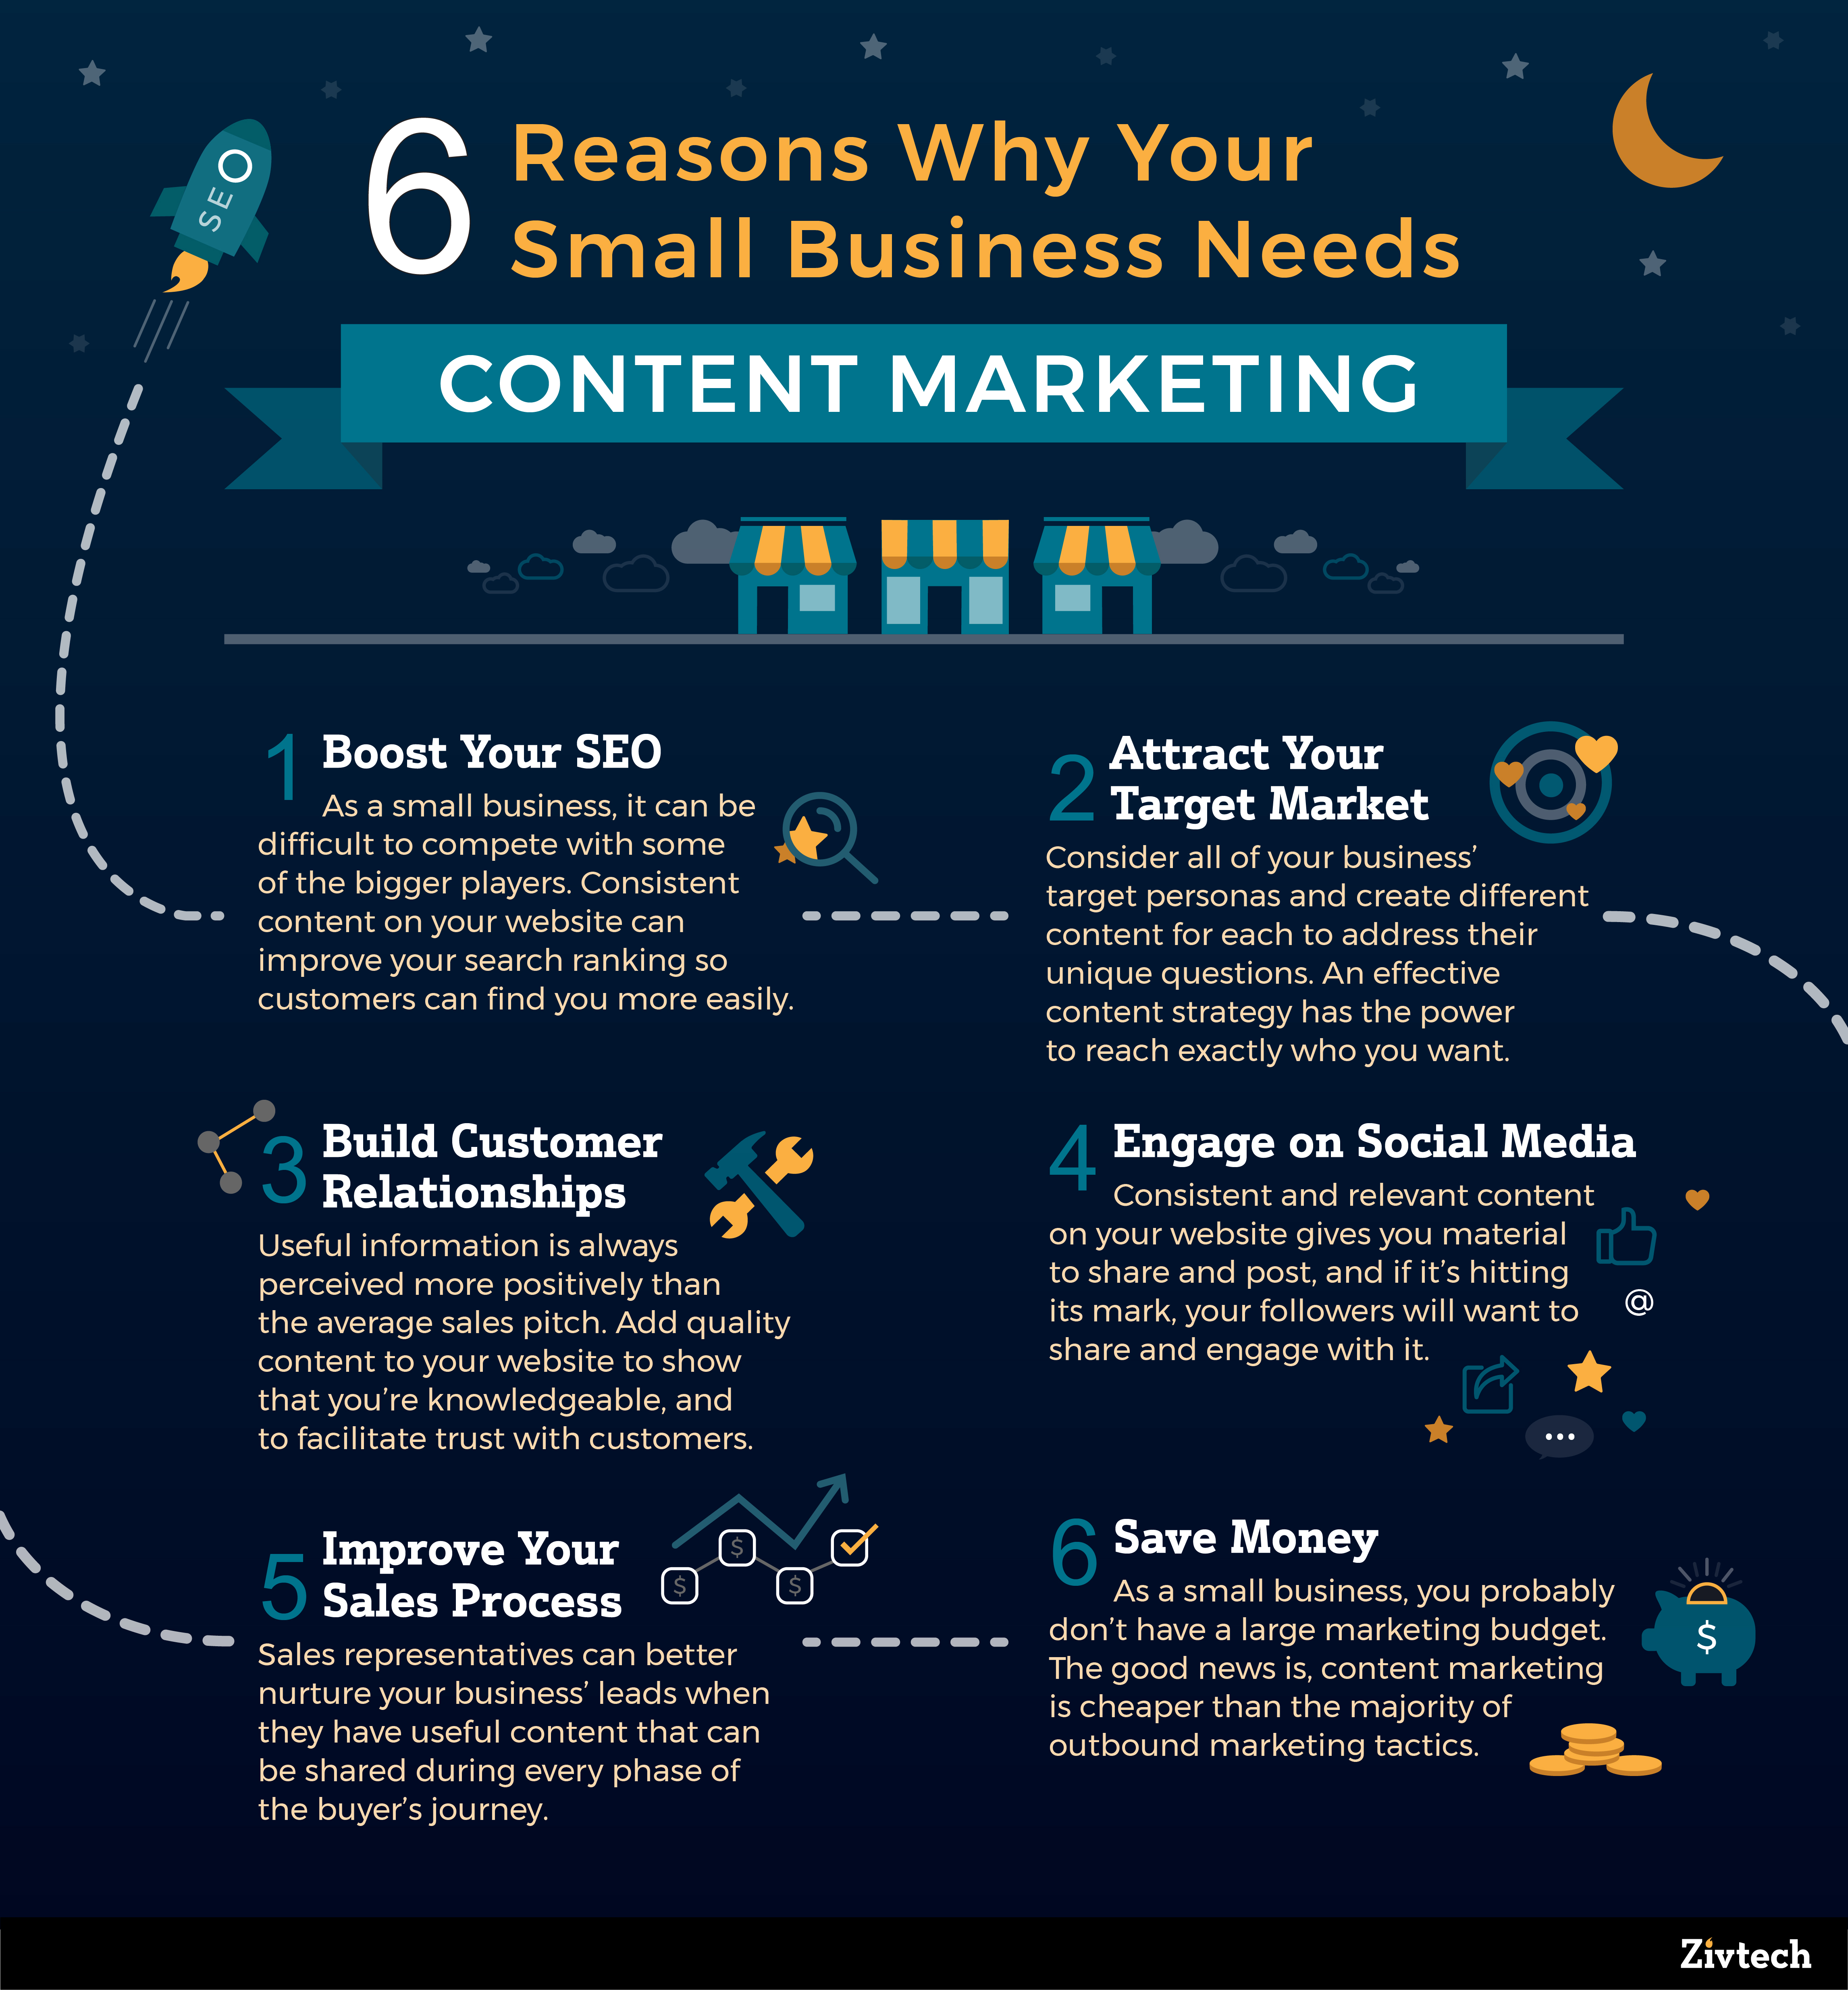 Reasons your small business needs content marketing